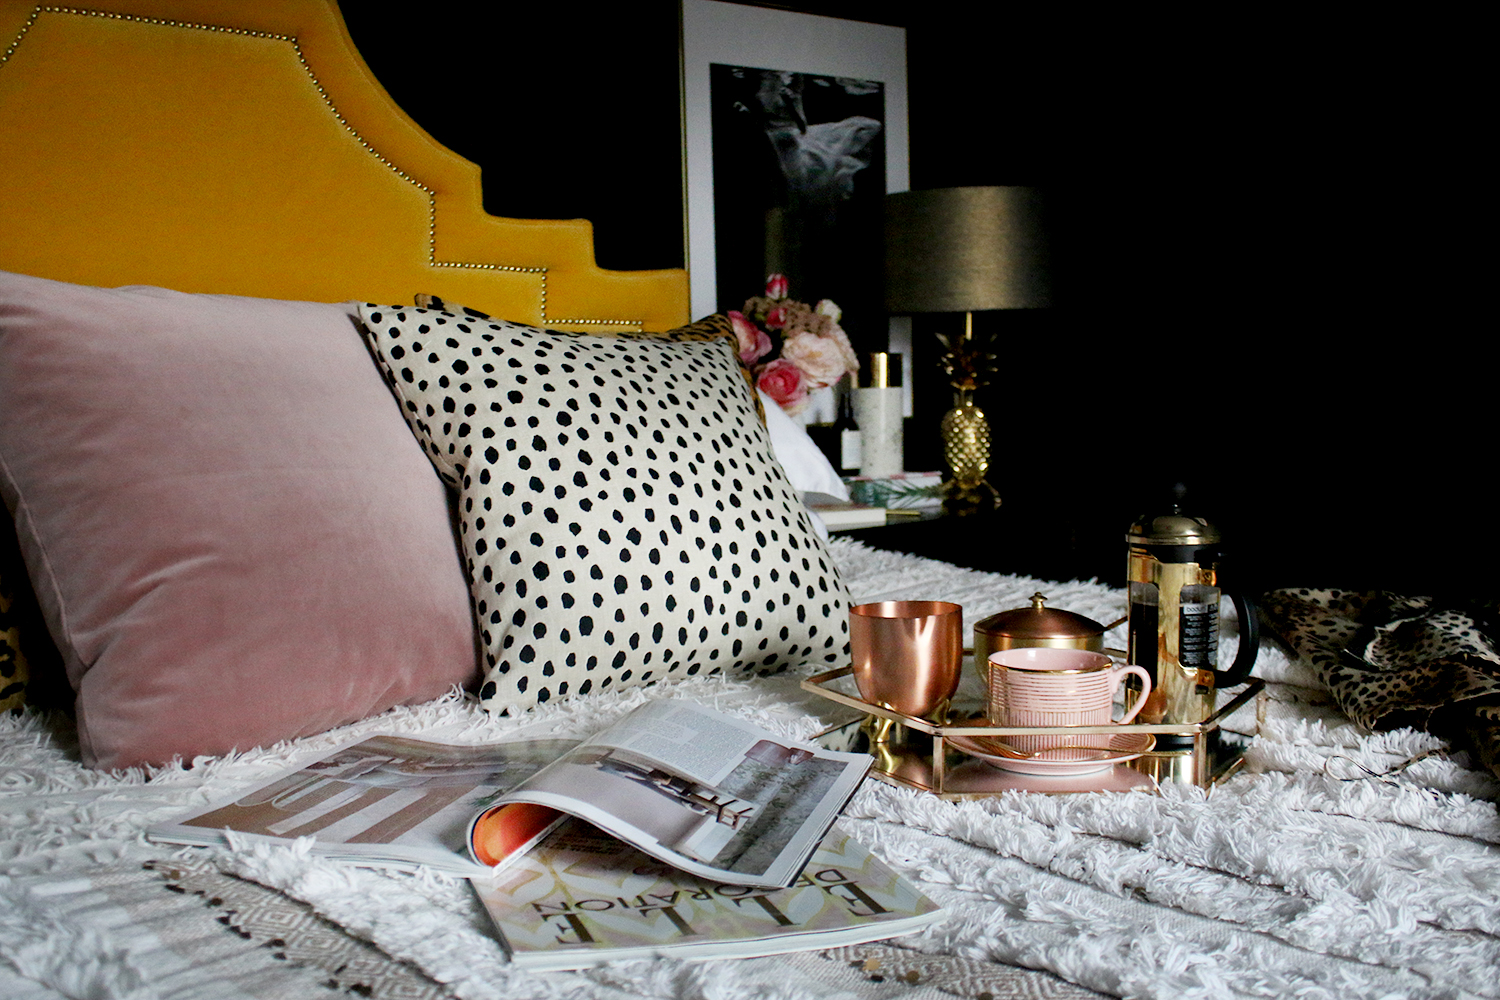 boho glam bedroom in black yellow and blush pink